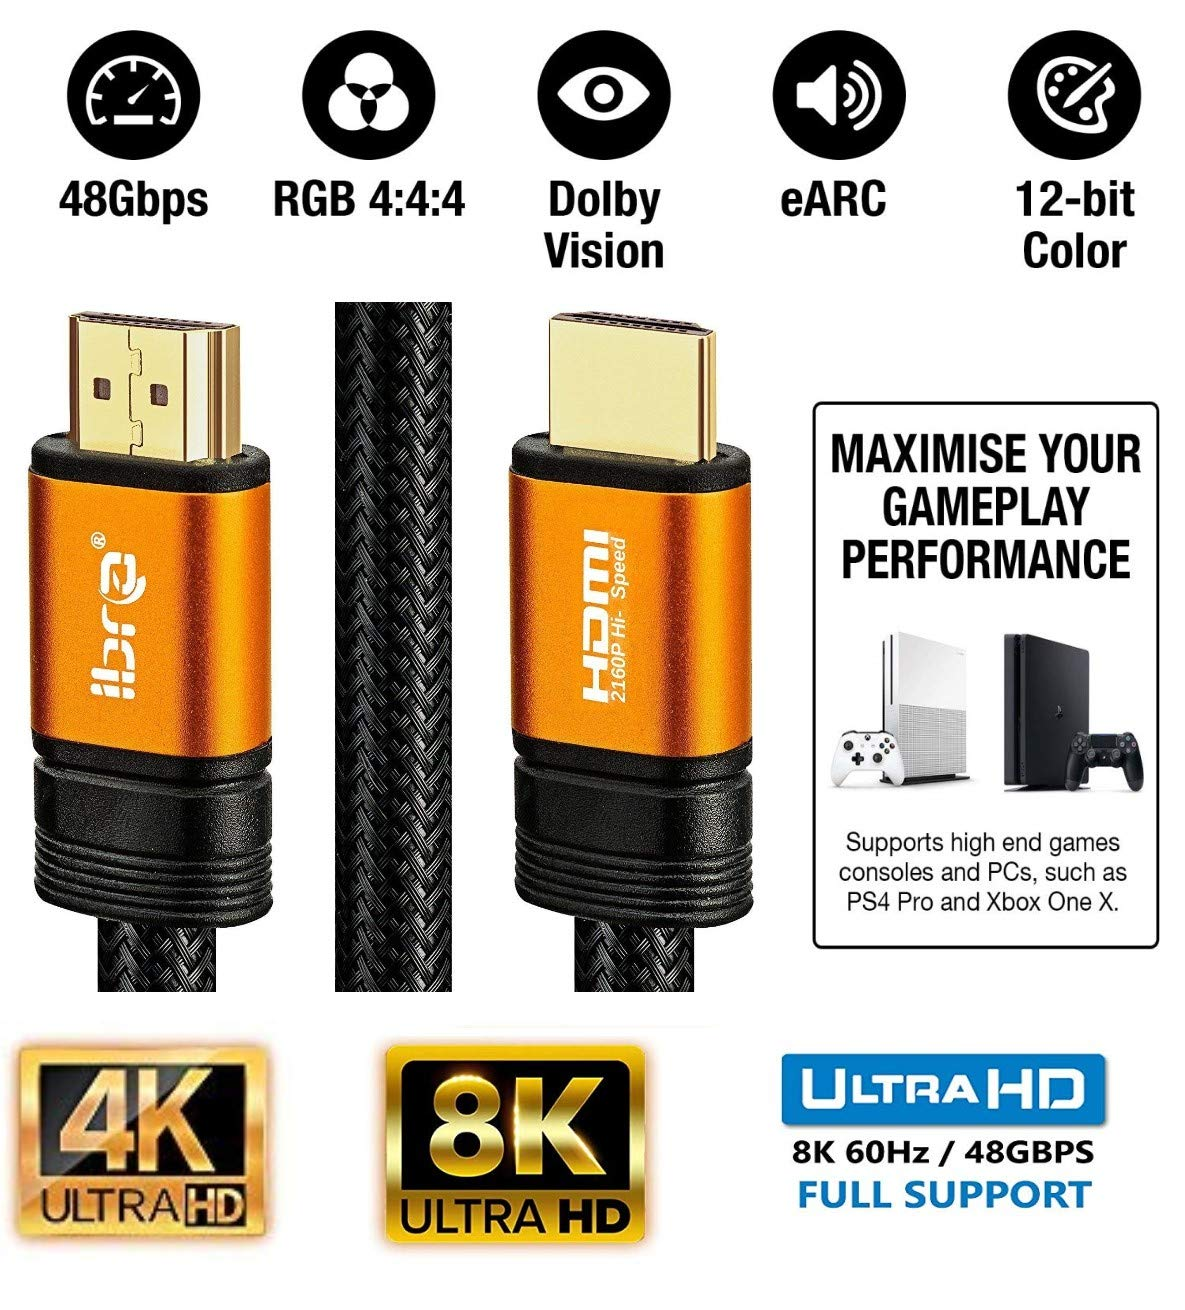 4K@120HZ Supporta 8K@60HZ funzione Ethernet 3D-Xbox PlayStation PS3 PS4 PC compatibile con Fire TV 4320p supporto 3D Cavo HDMI IBRA 2.1 Cavo 8K Ultra High Speed 48Gbps 3M 8K UHD